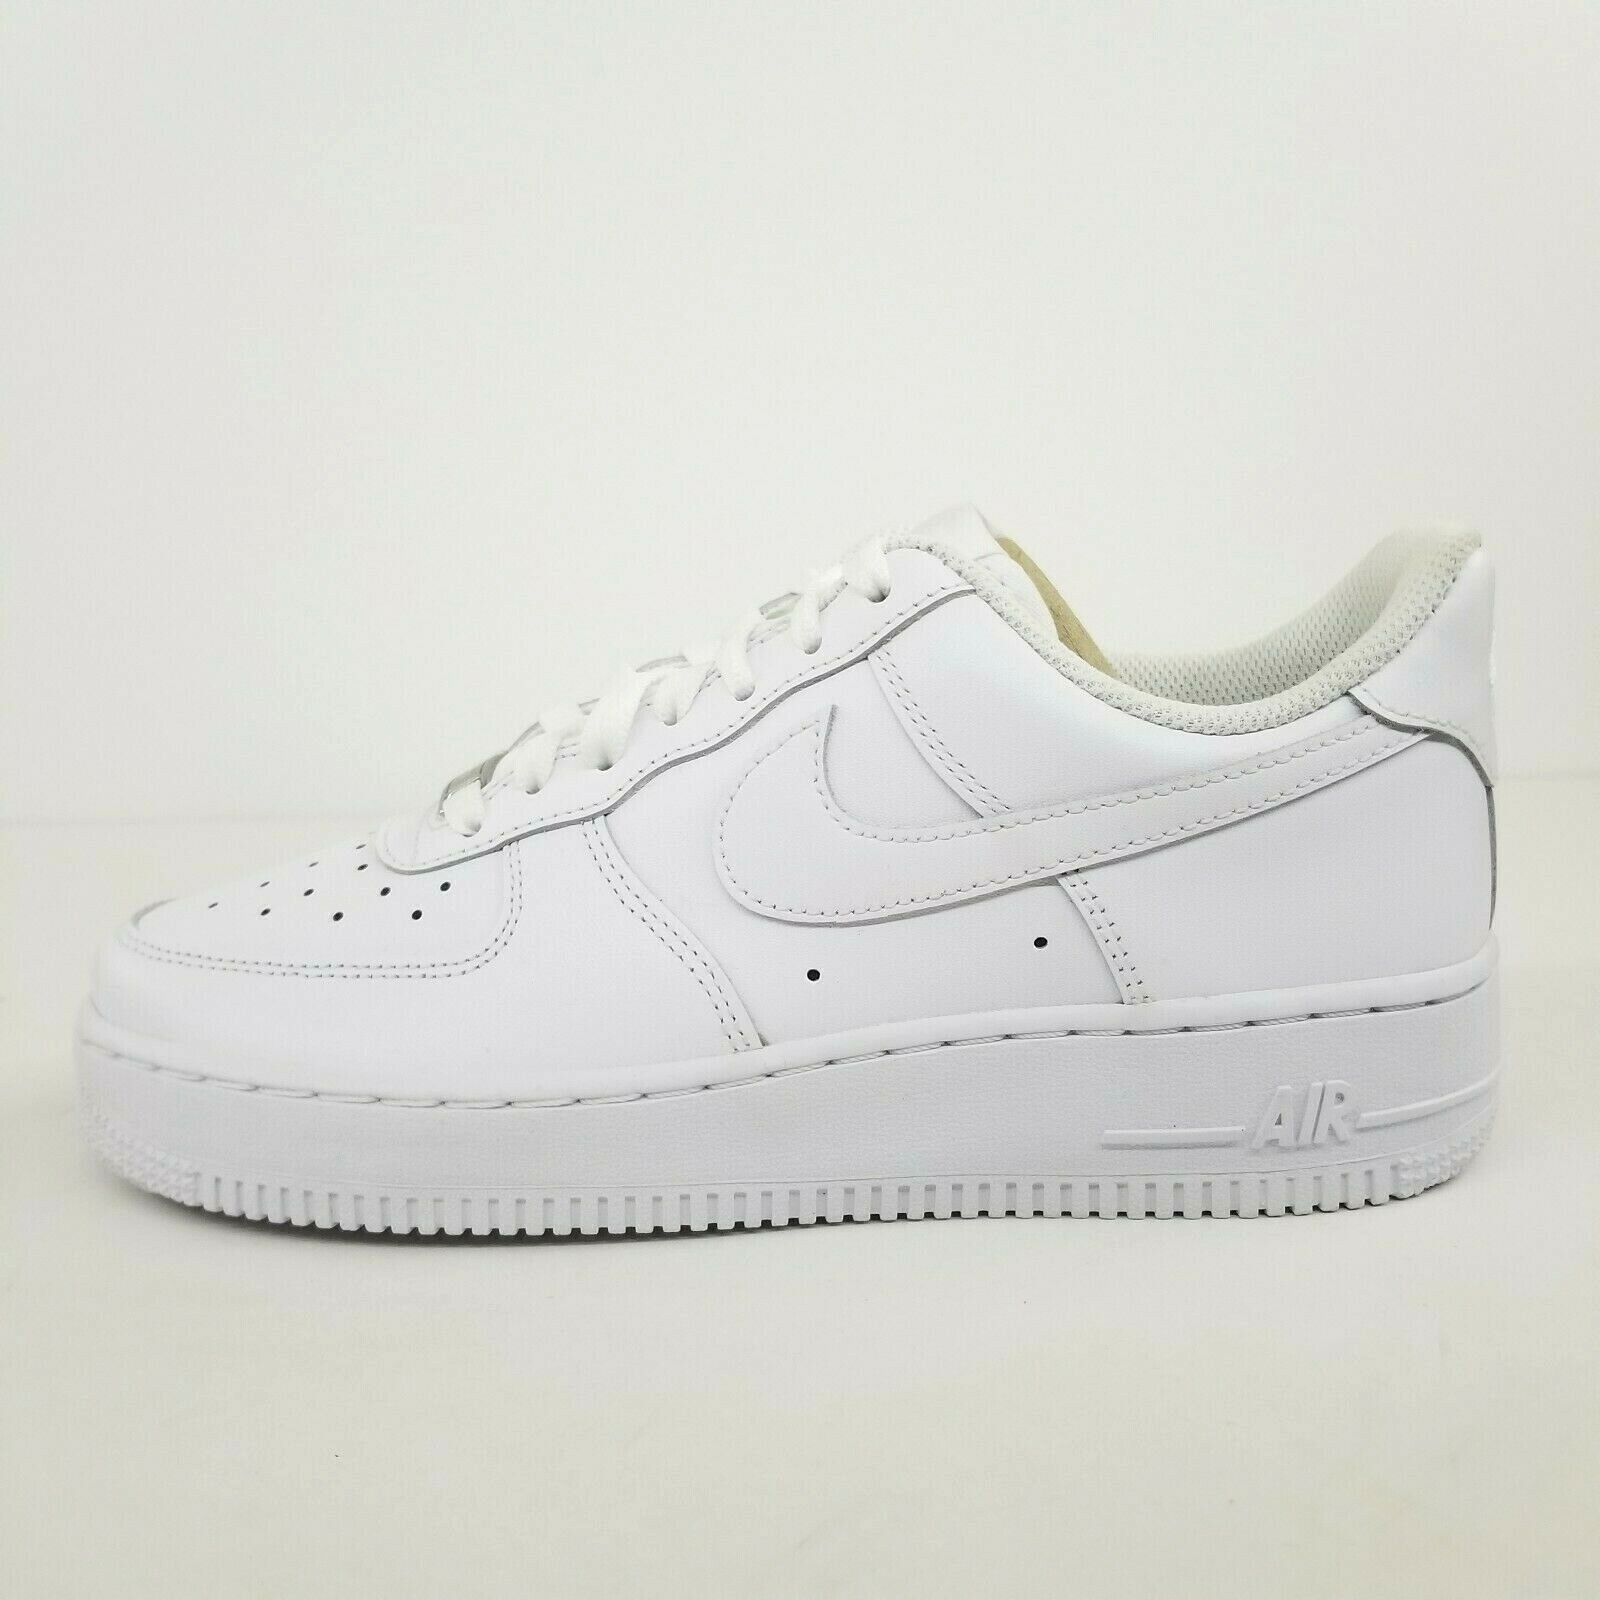 Size 6 - Nike Air Force 1 '07 White 2018 for sale online   eBay